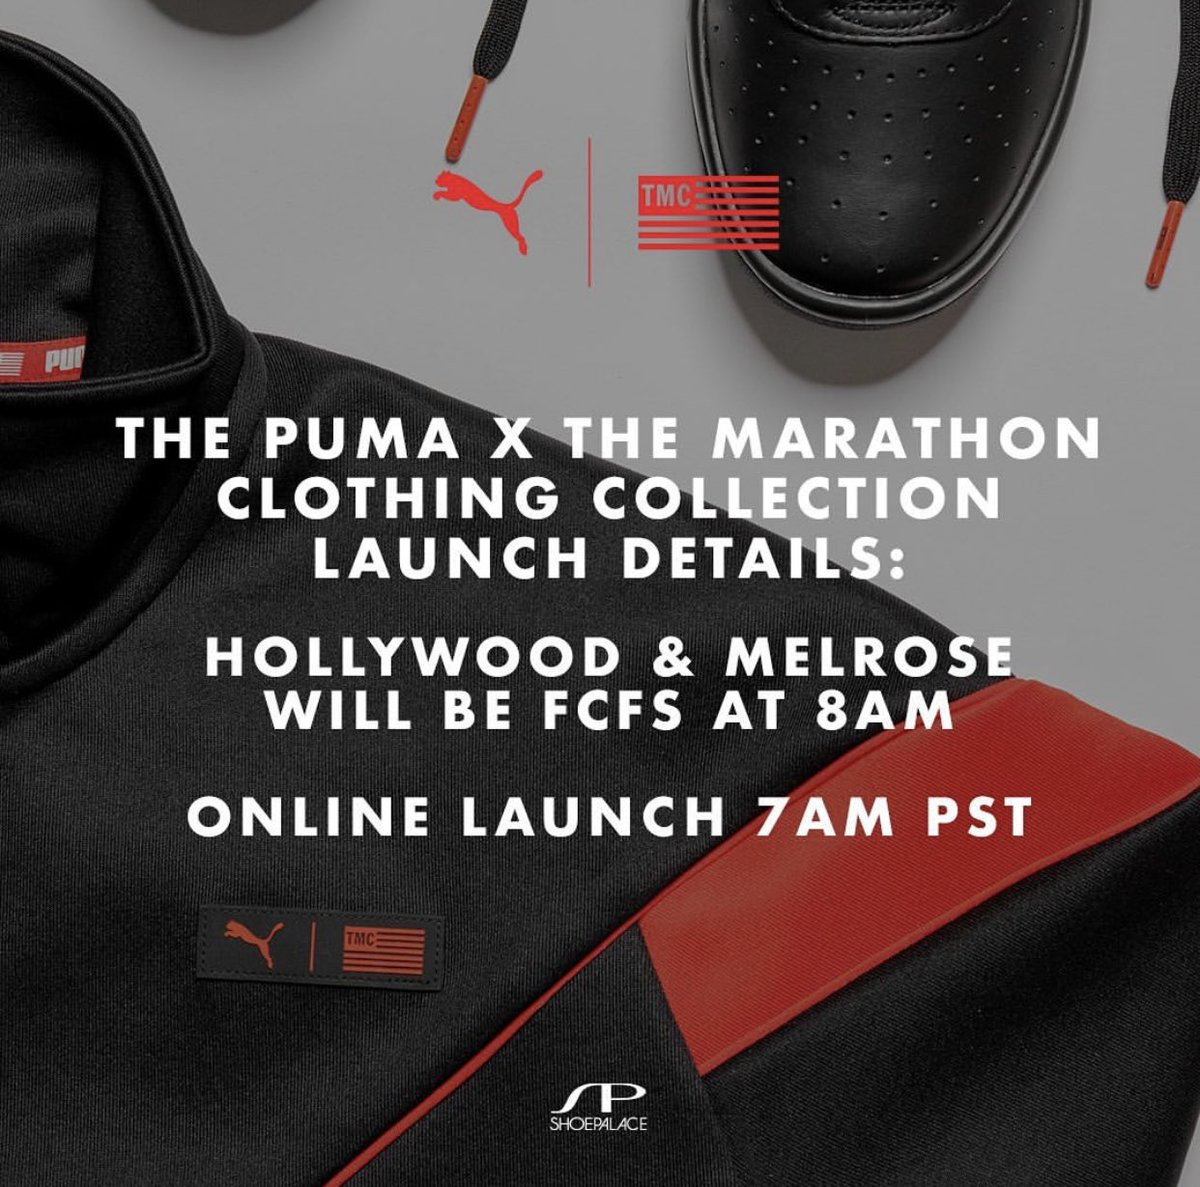 LAUNCH DETAILS: MELROSE & HOLLYWOOD LOCATION ARE FCFS 8AM PST  ONLINE AT  http:// SHOEPALACE.COM      LAUNCH IS AT 7AM PST  #pumaxtmc <br>http://pic.twitter.com/vpzhom4u51